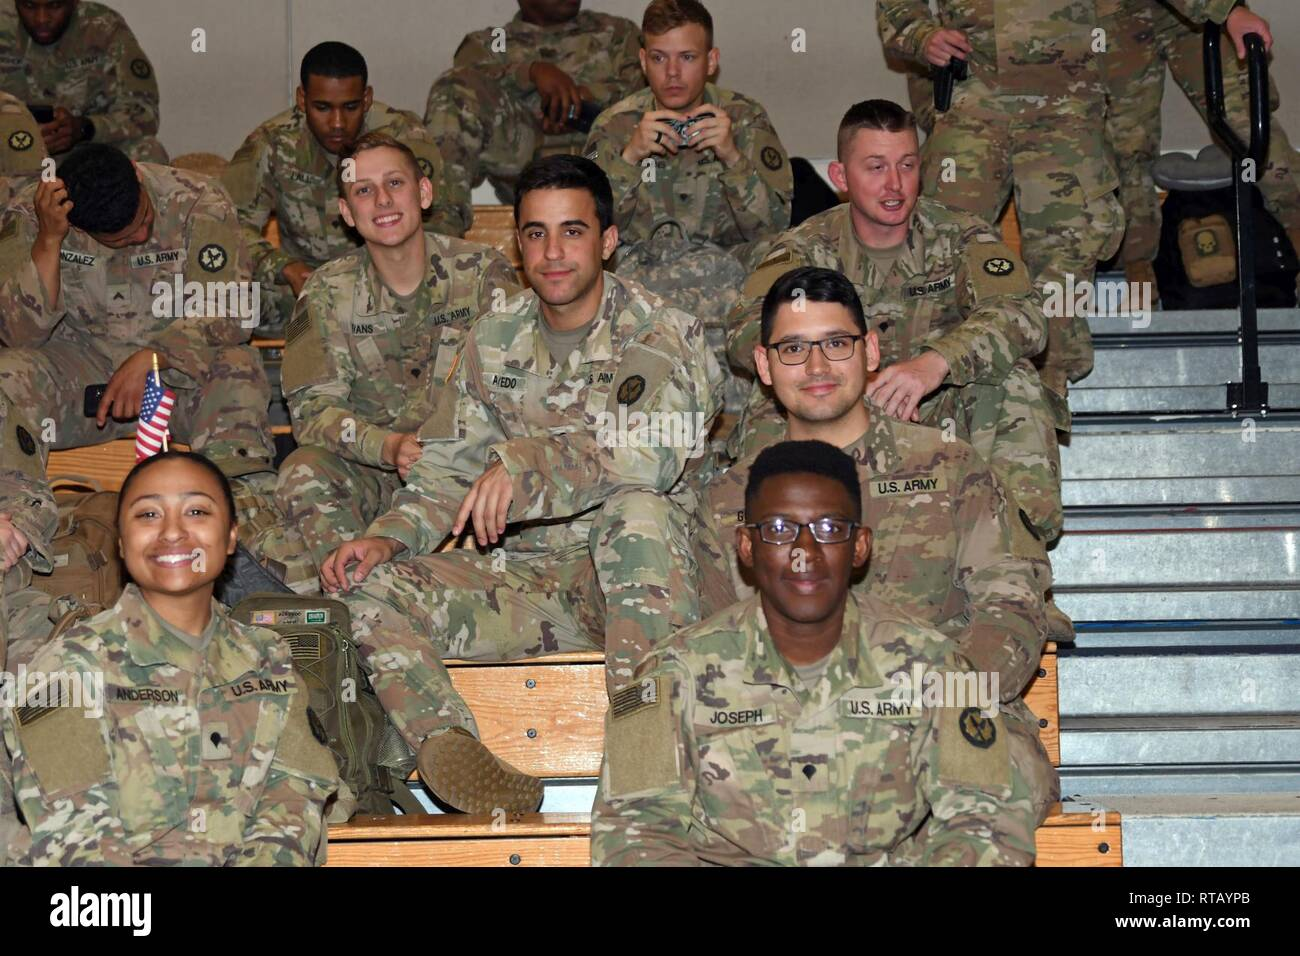 FORT BLISS, Texas – Approximately 140 Army Reserve Soldiers